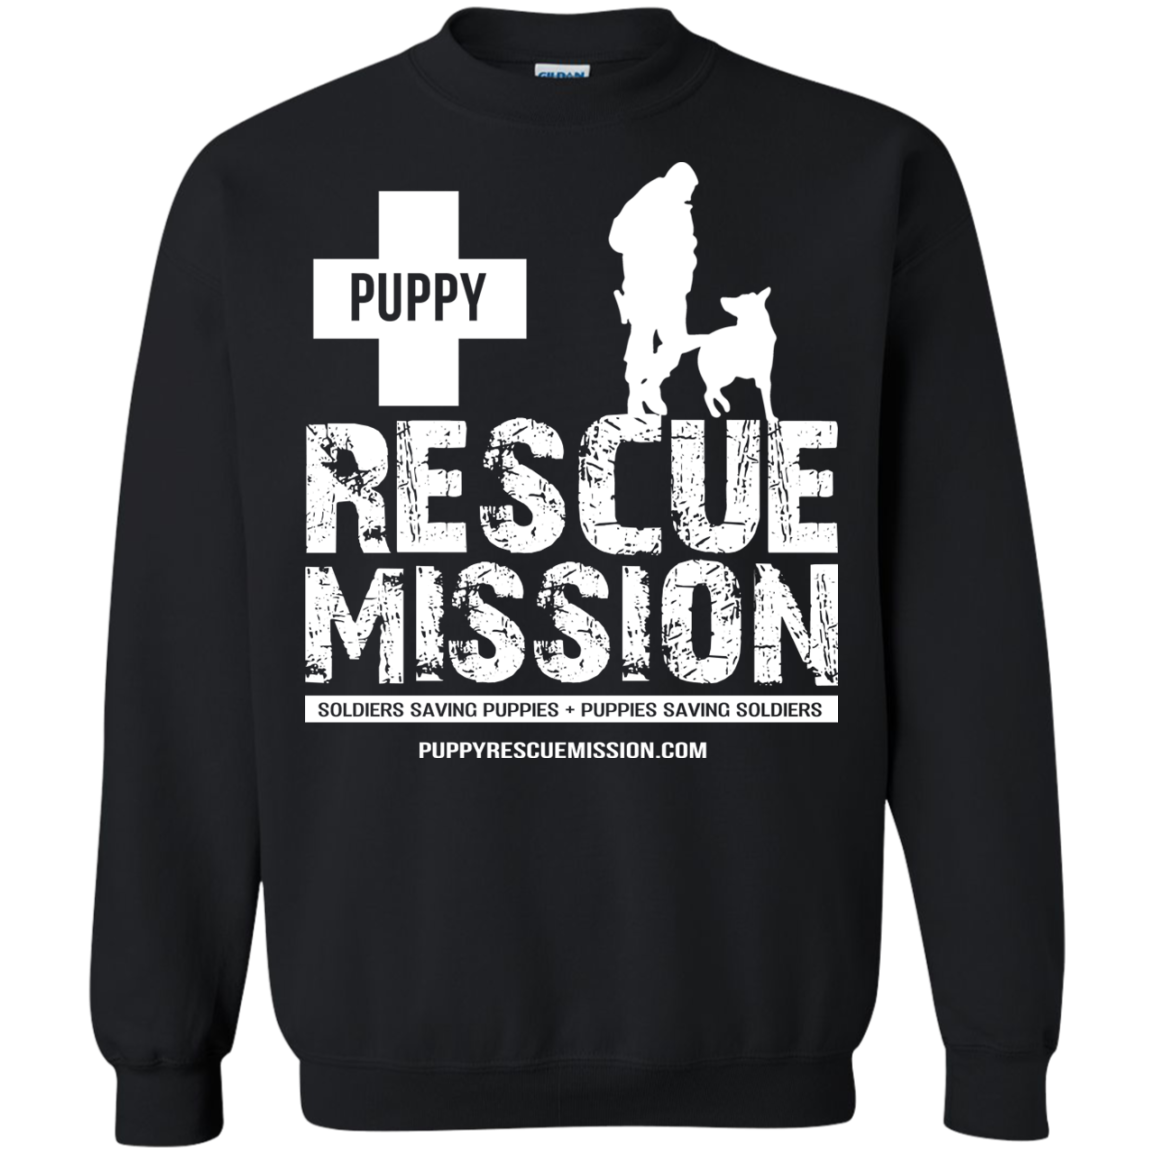 Puppy Rescue Mission T-Shirt